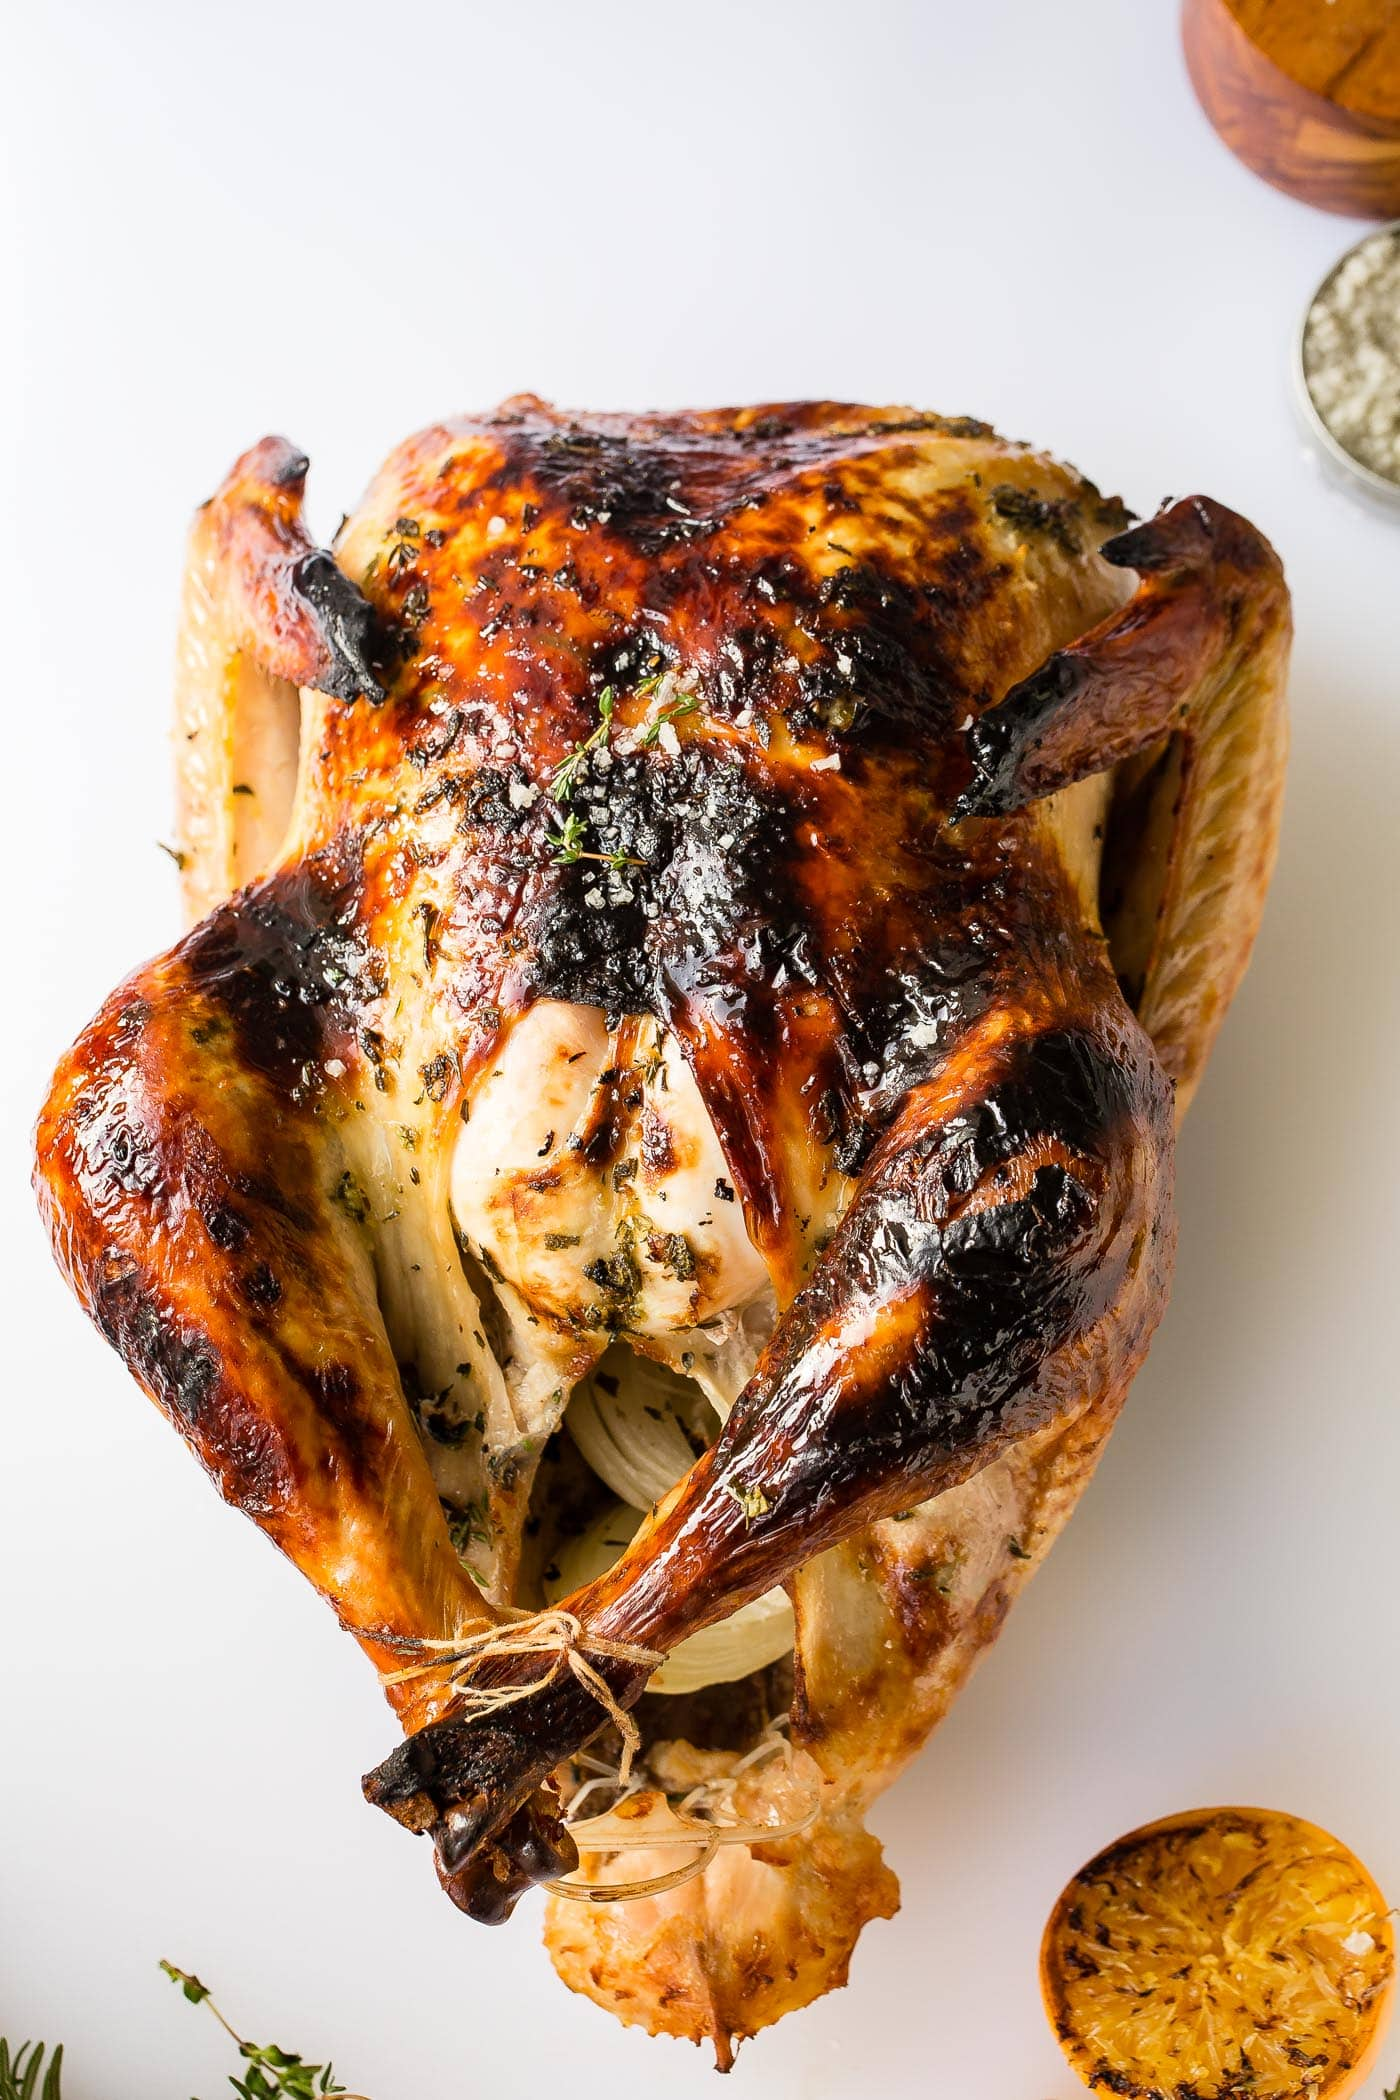 A roasted whole turkey that is ready to be carved.